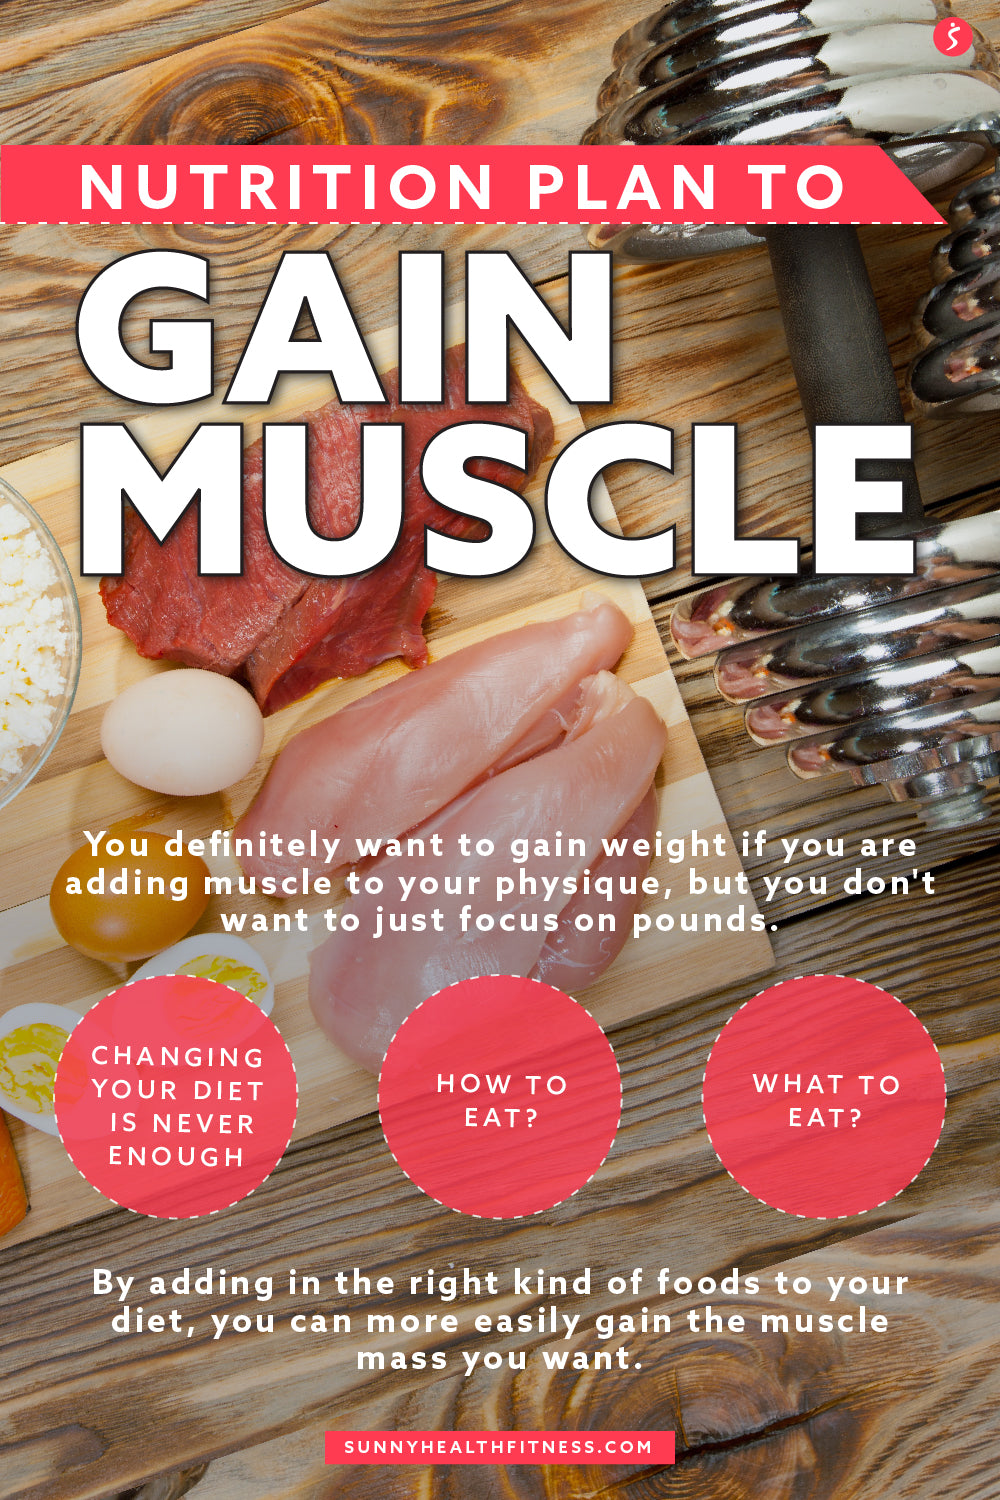 Nutrition Plan to Gain Muscle Infographic